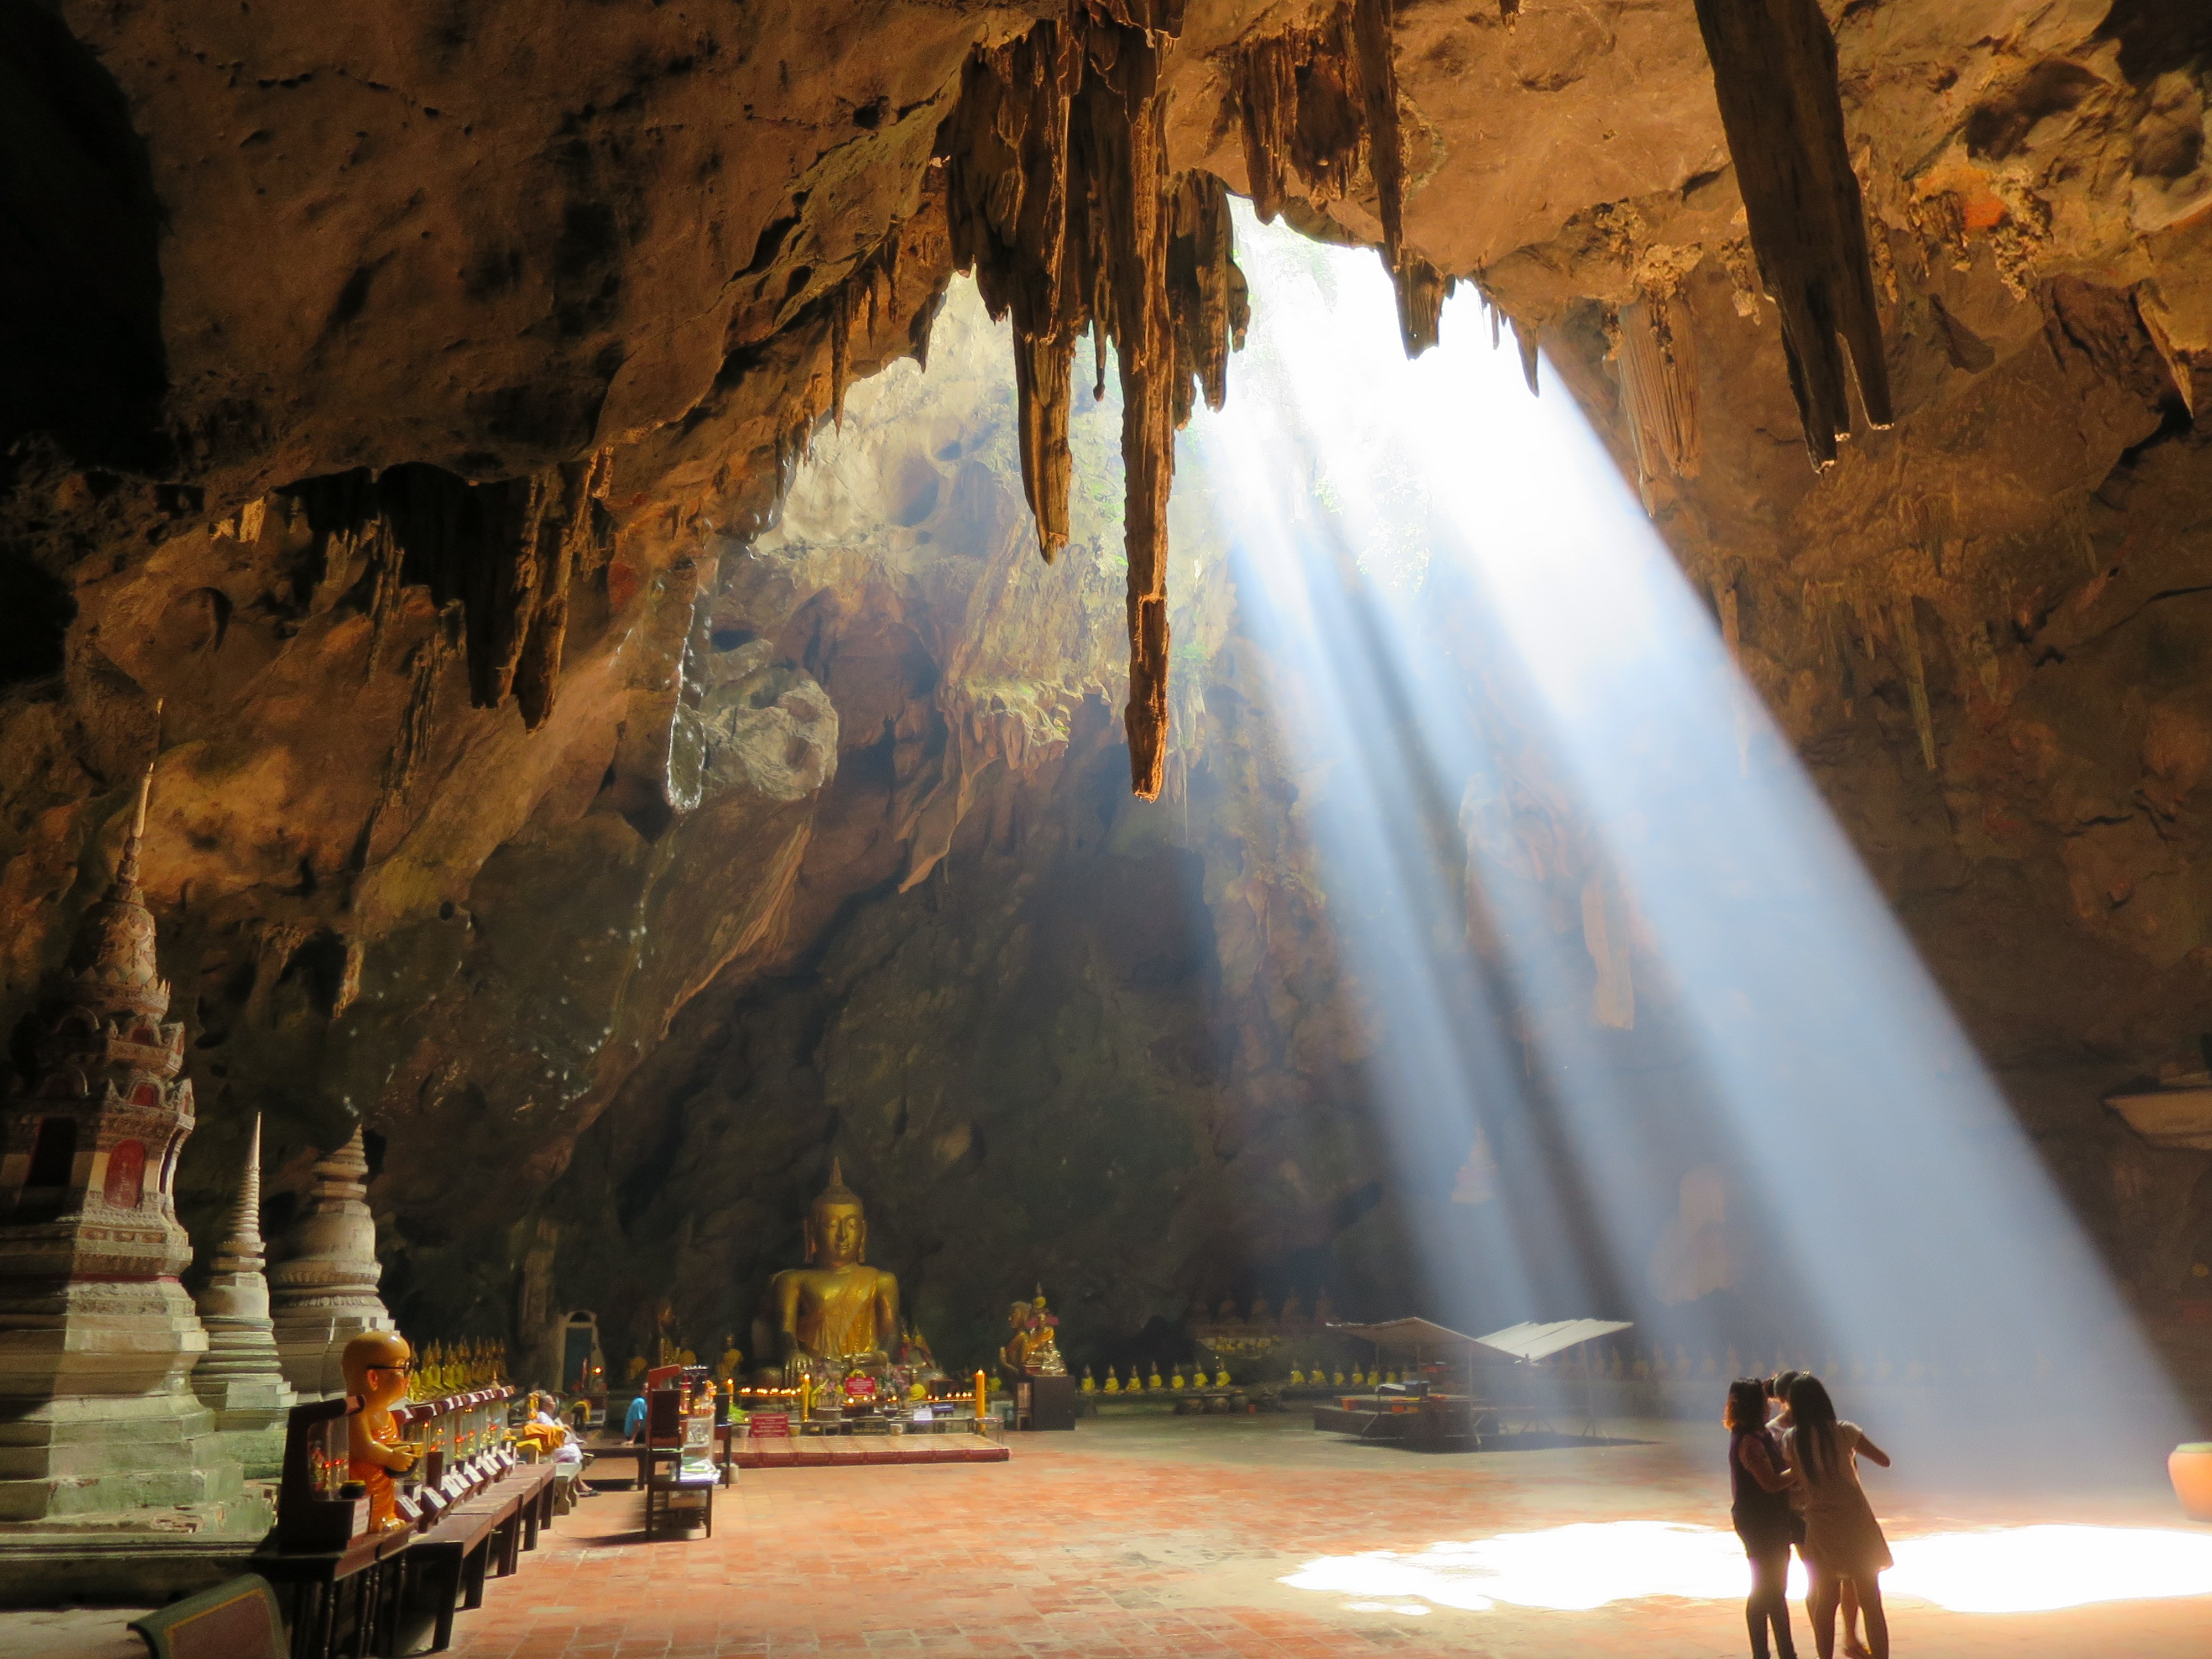 Khao Luang Caves Thailand